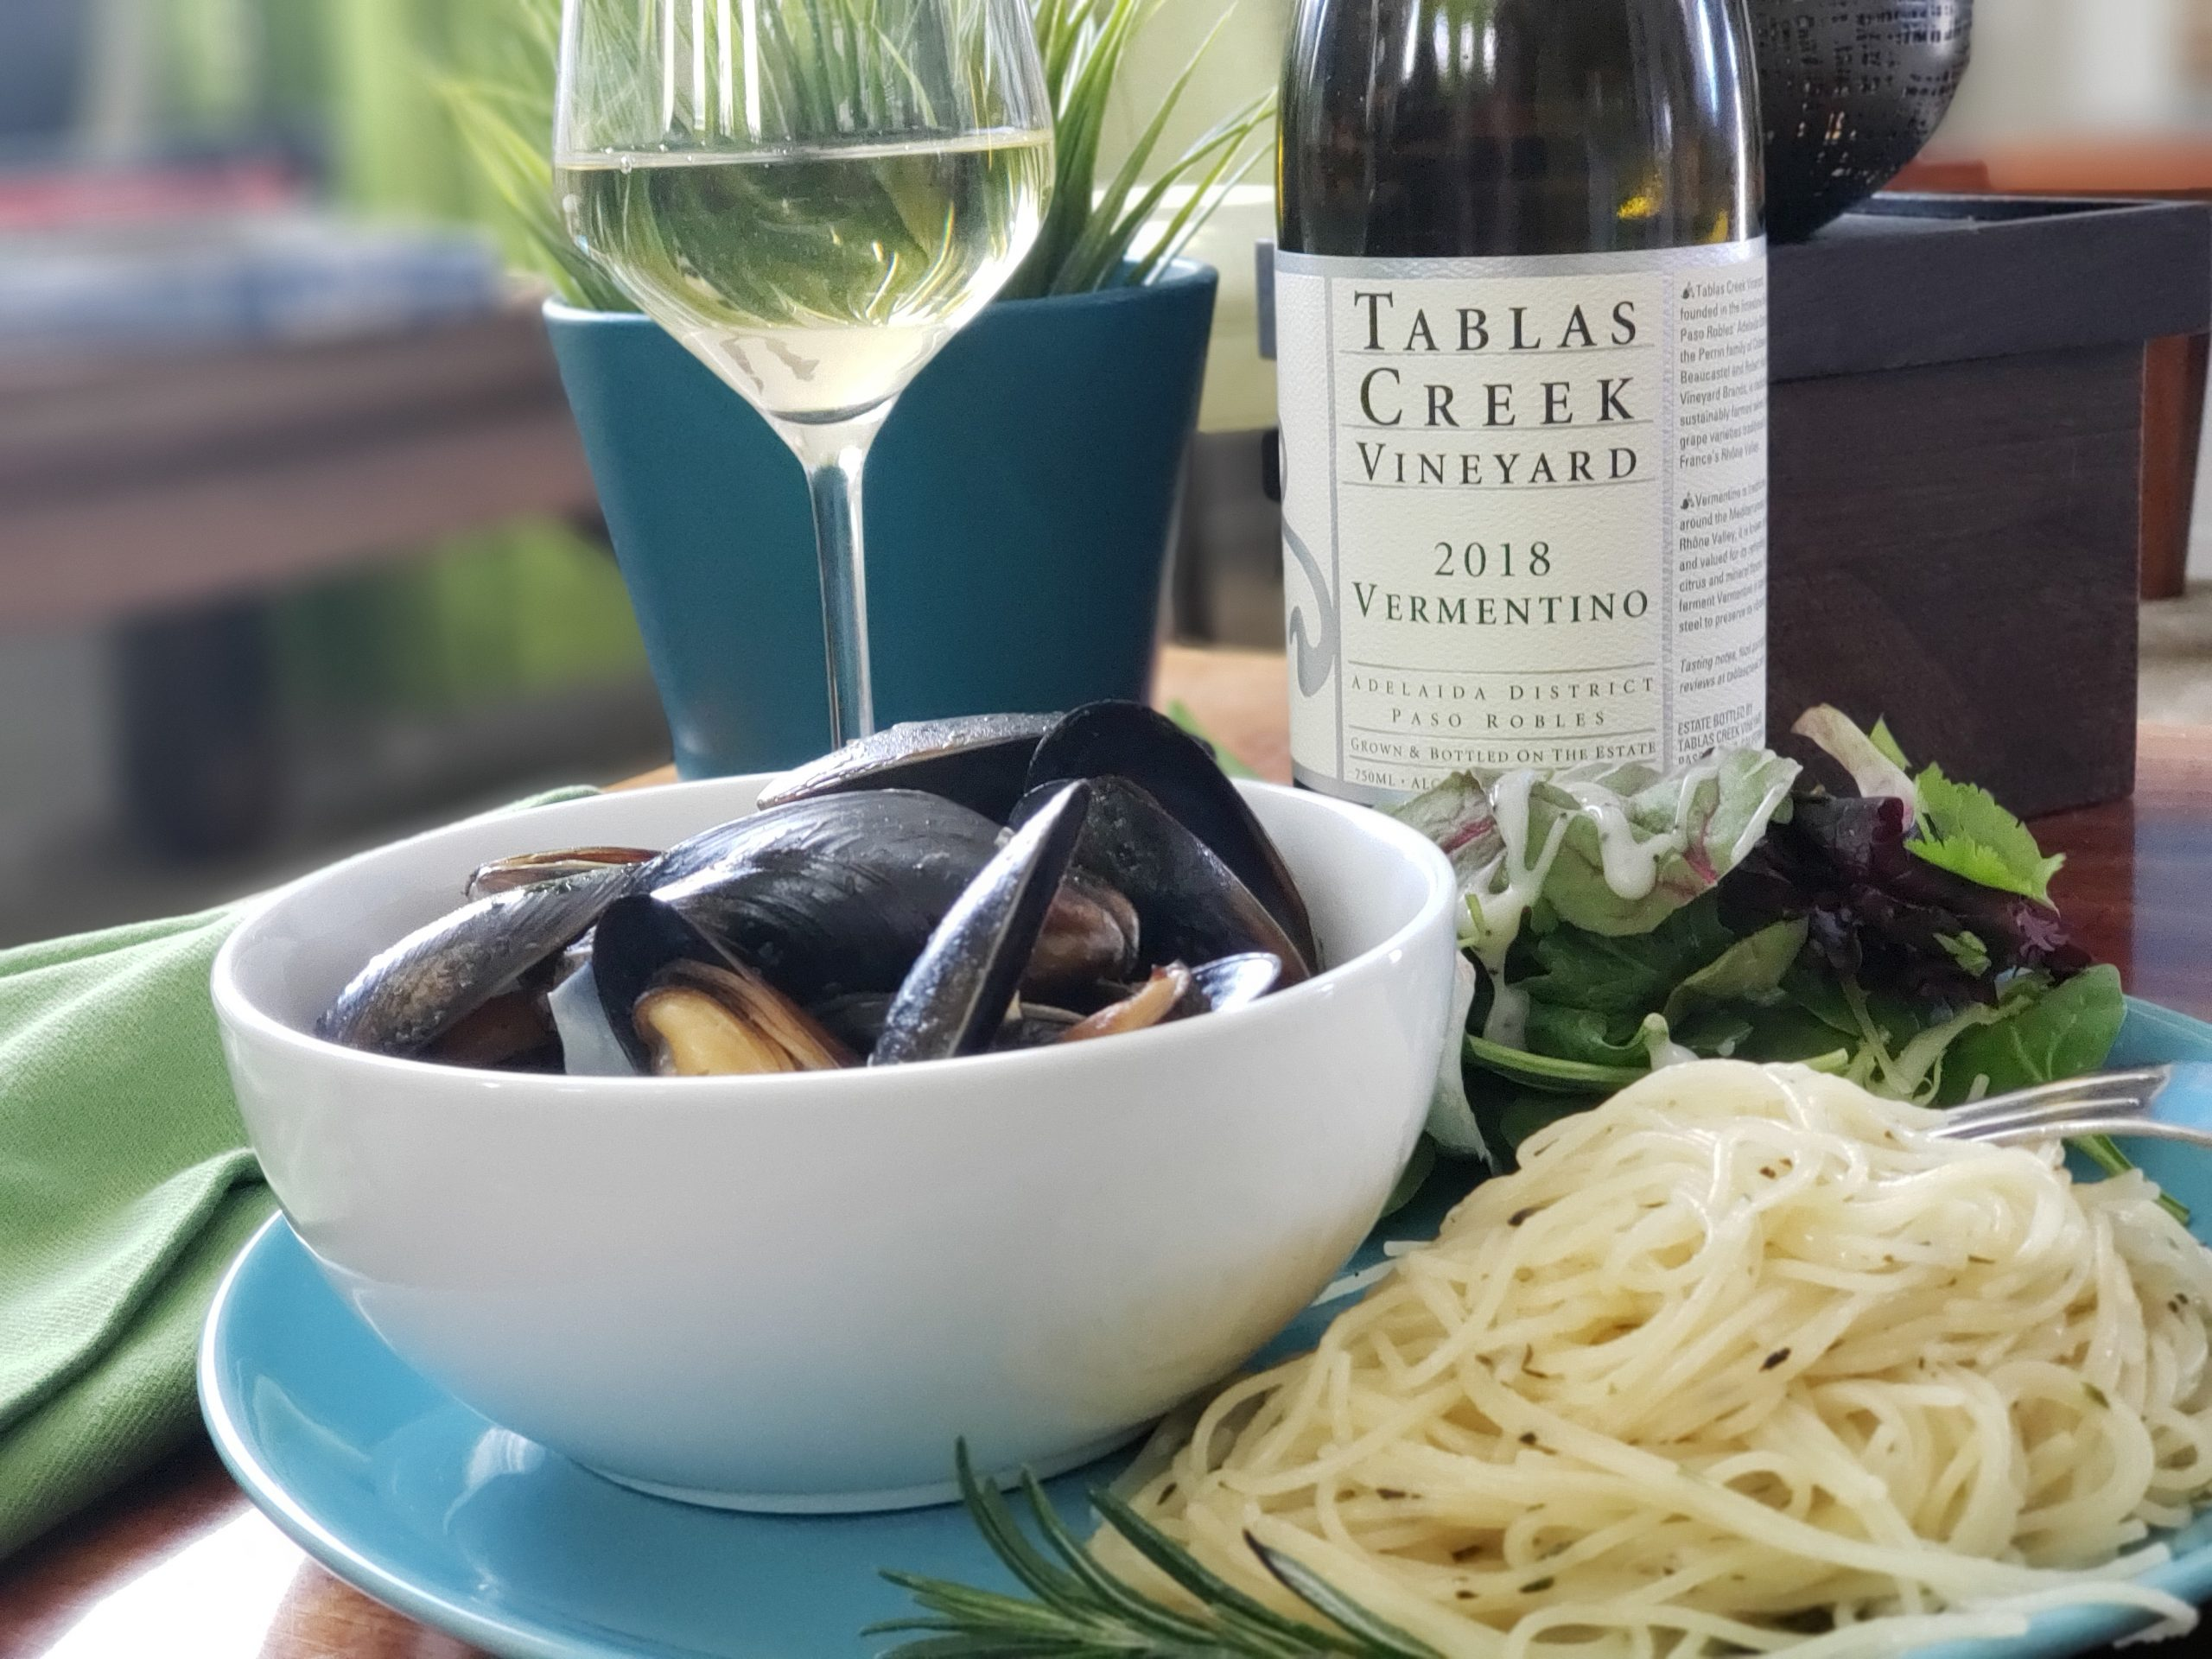 Tablas Creek 2018 Vermentino with mussels #pantrypairings #Travelinabottle